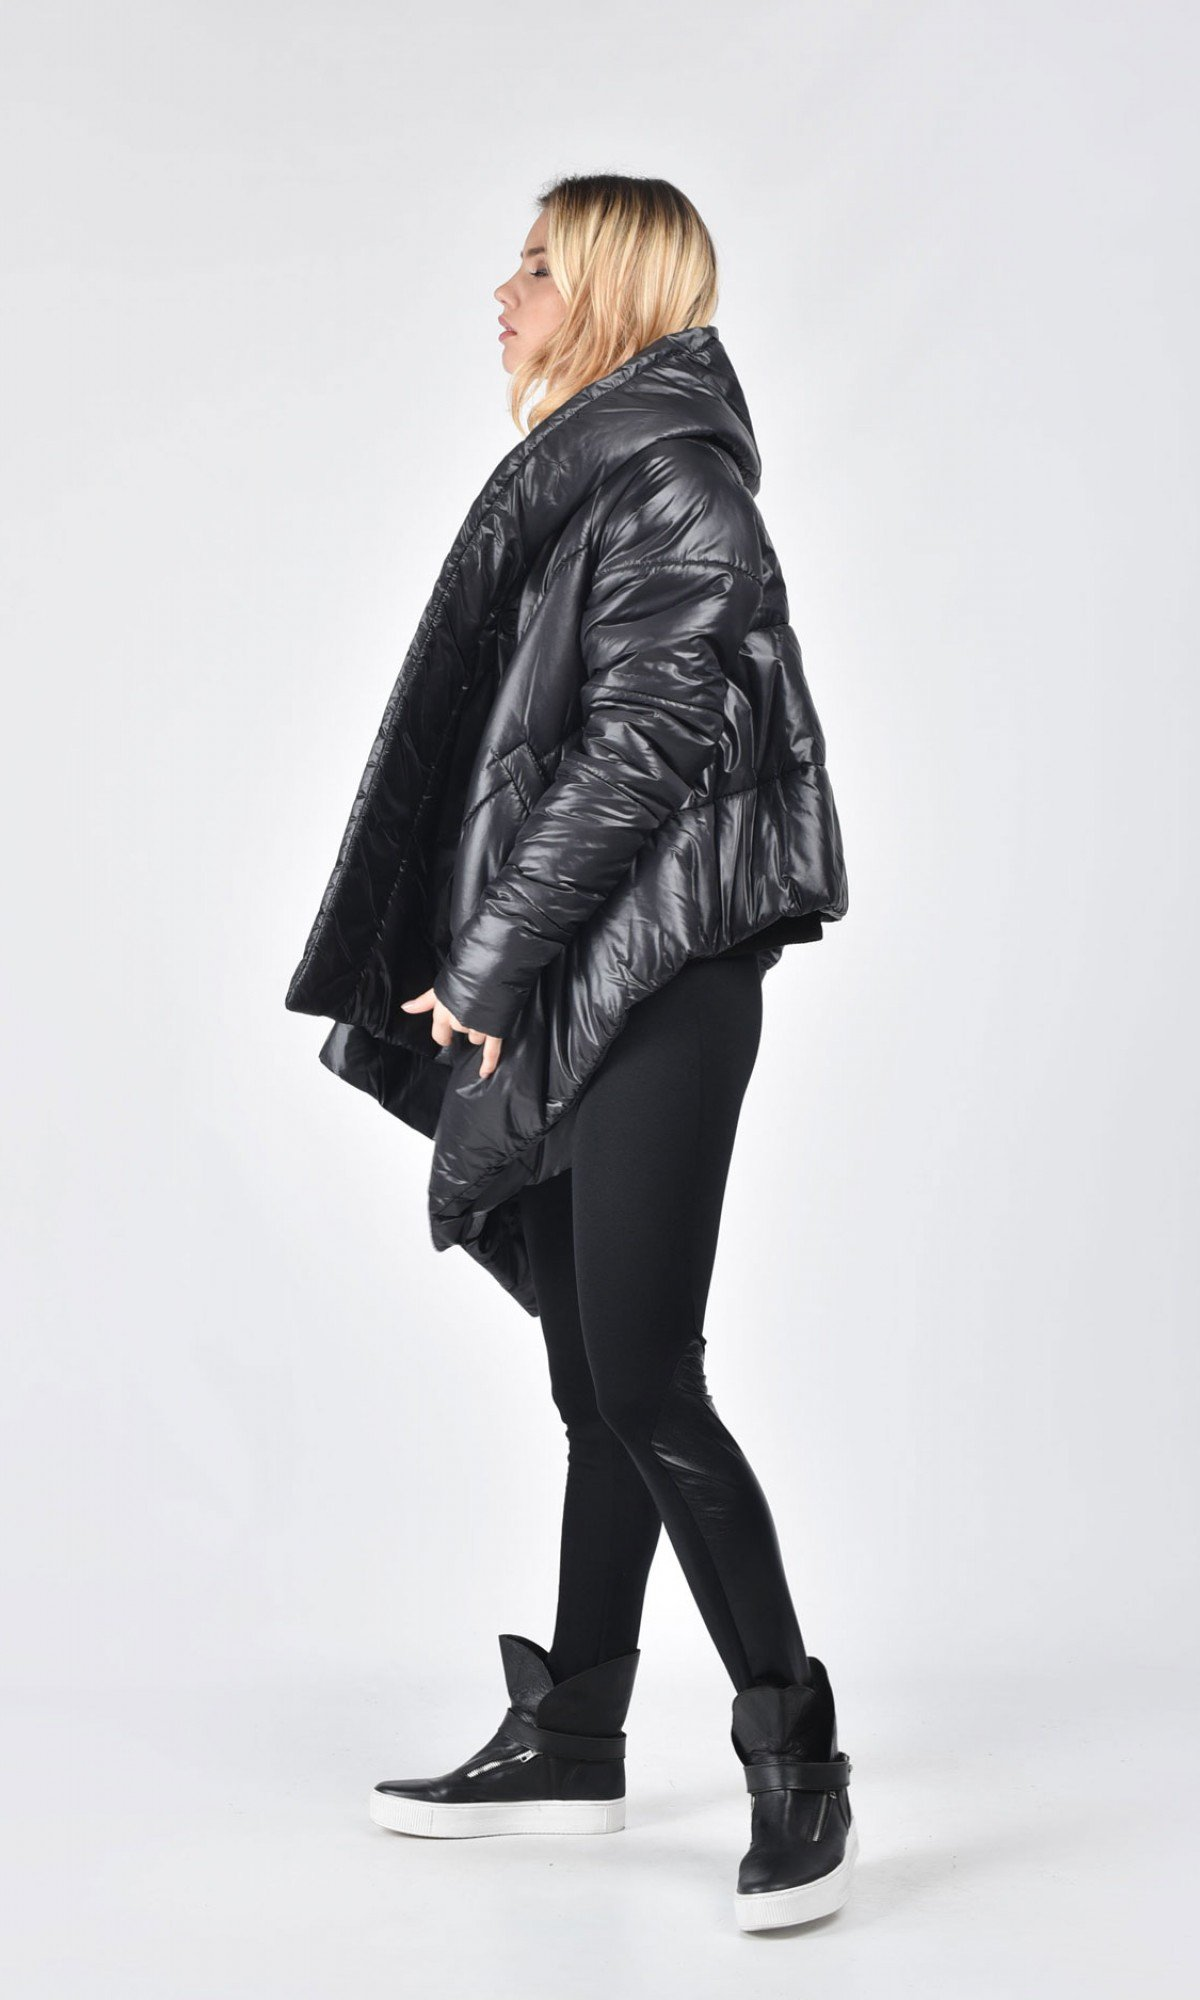 Short Asymmetric Extravagant Black Hooded Coat A07554